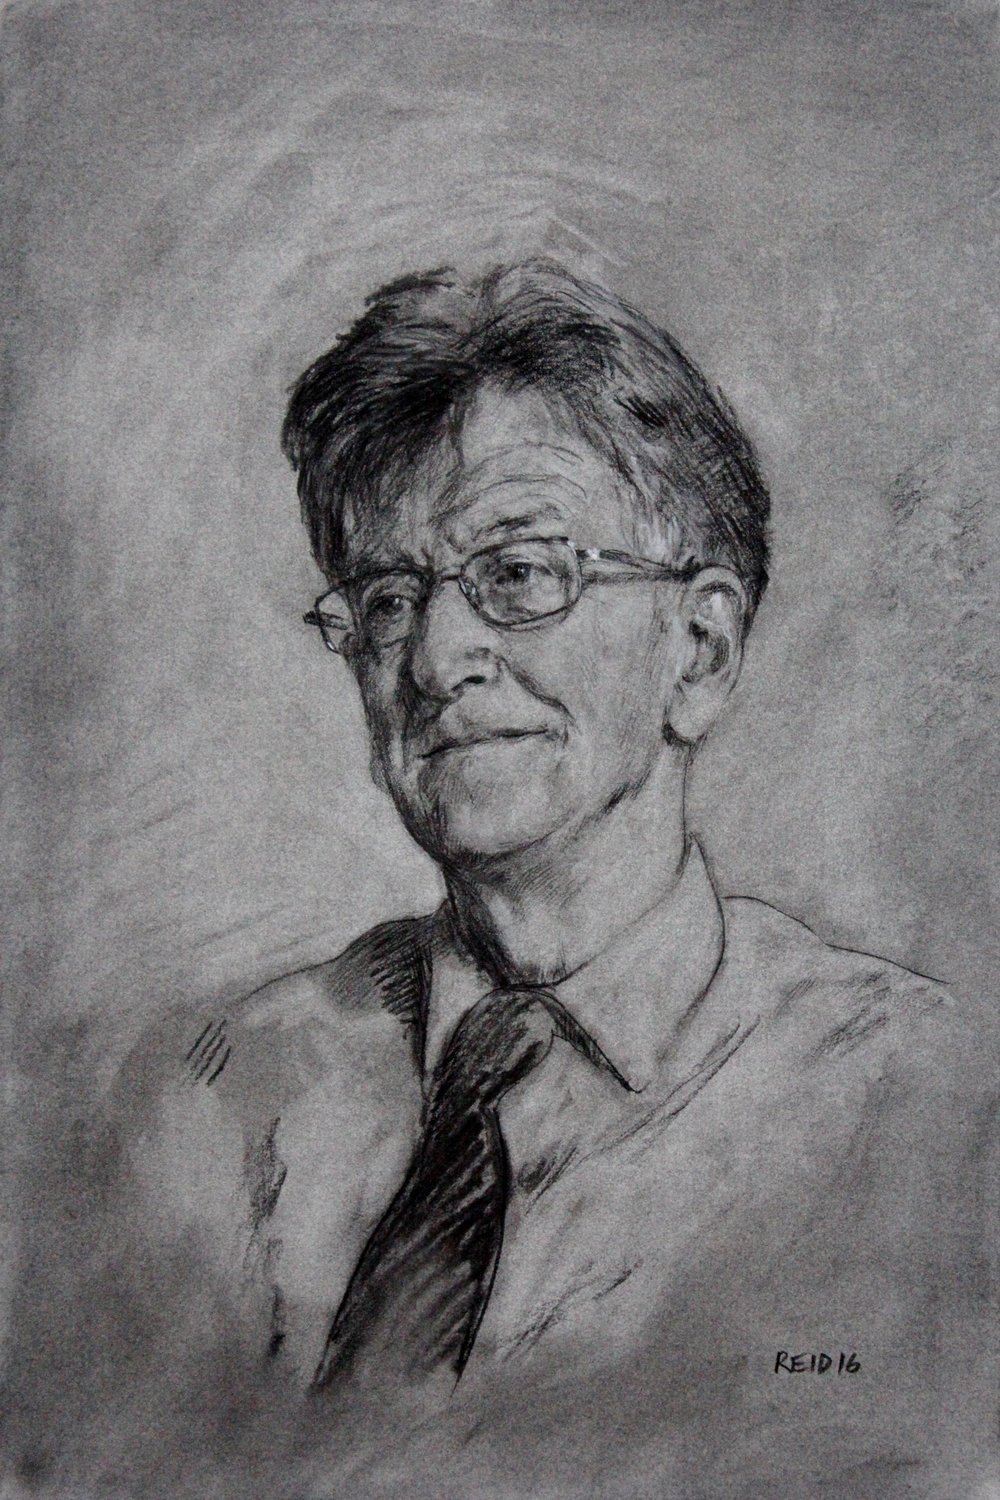 'Portrait study of Dr Richard Kimberlin OBE